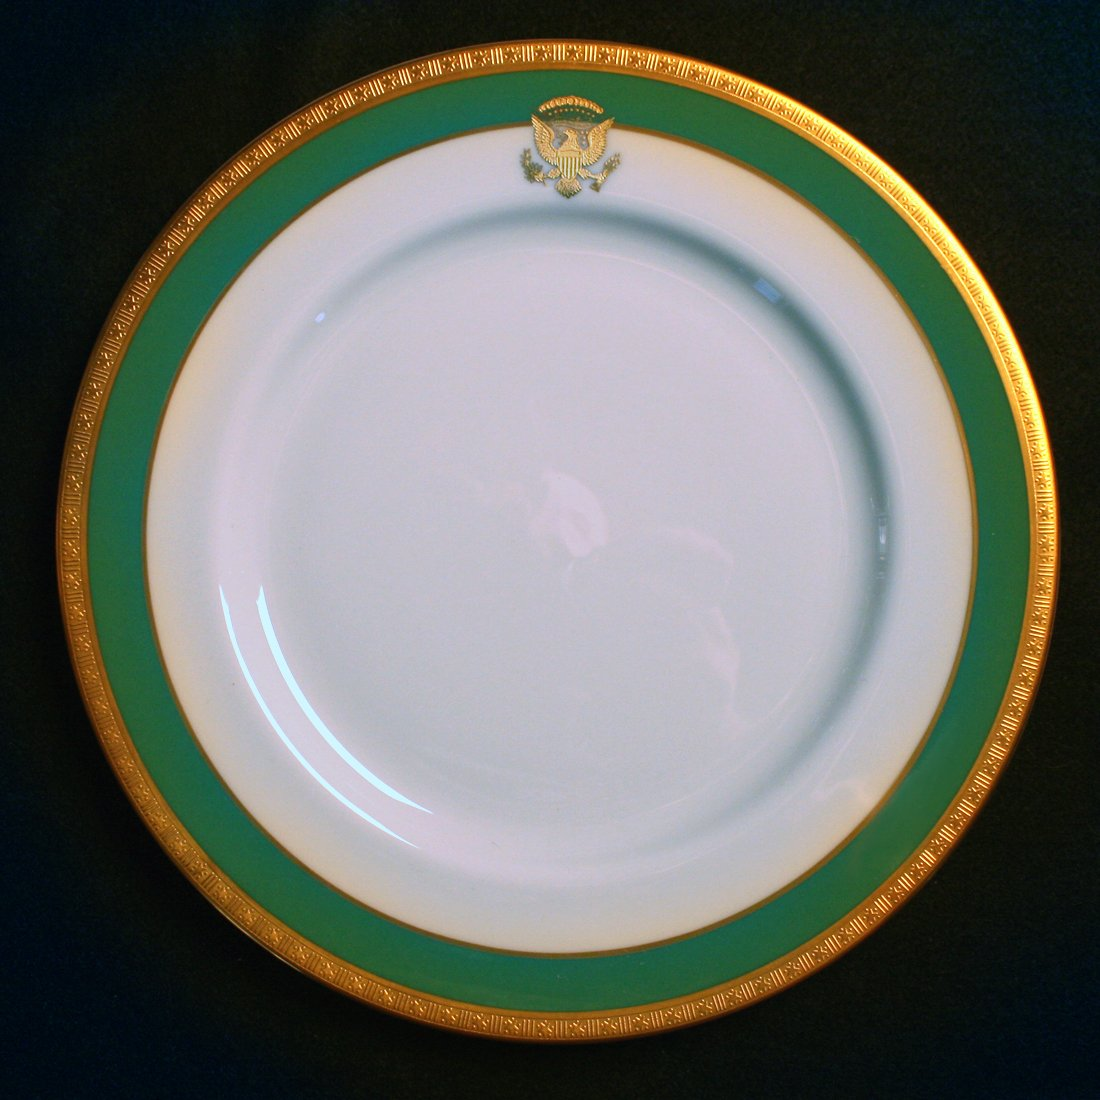 carter_w.h._china_full_shot_jimmy-carter-white-house-china-dinner-plate-1.jpg